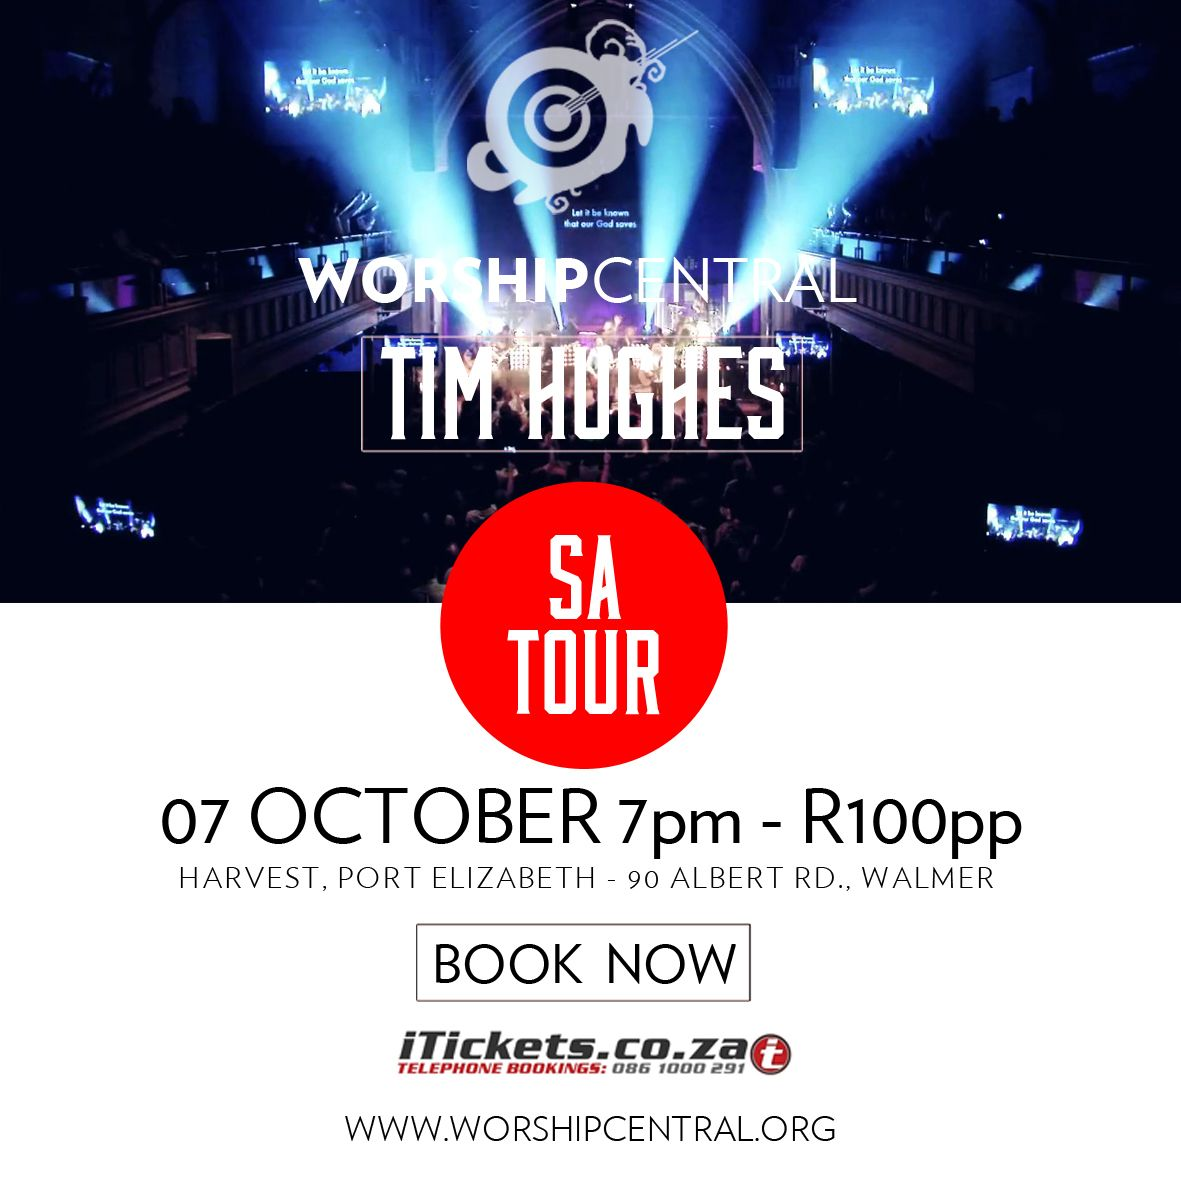 Today would be a good day to get your tickets... WORSHIP CENTRAL and TIM HUGHES 7pm Harvest 7Oct #2DAYS R100pp at iTickets.co.za or Harvest info desk.